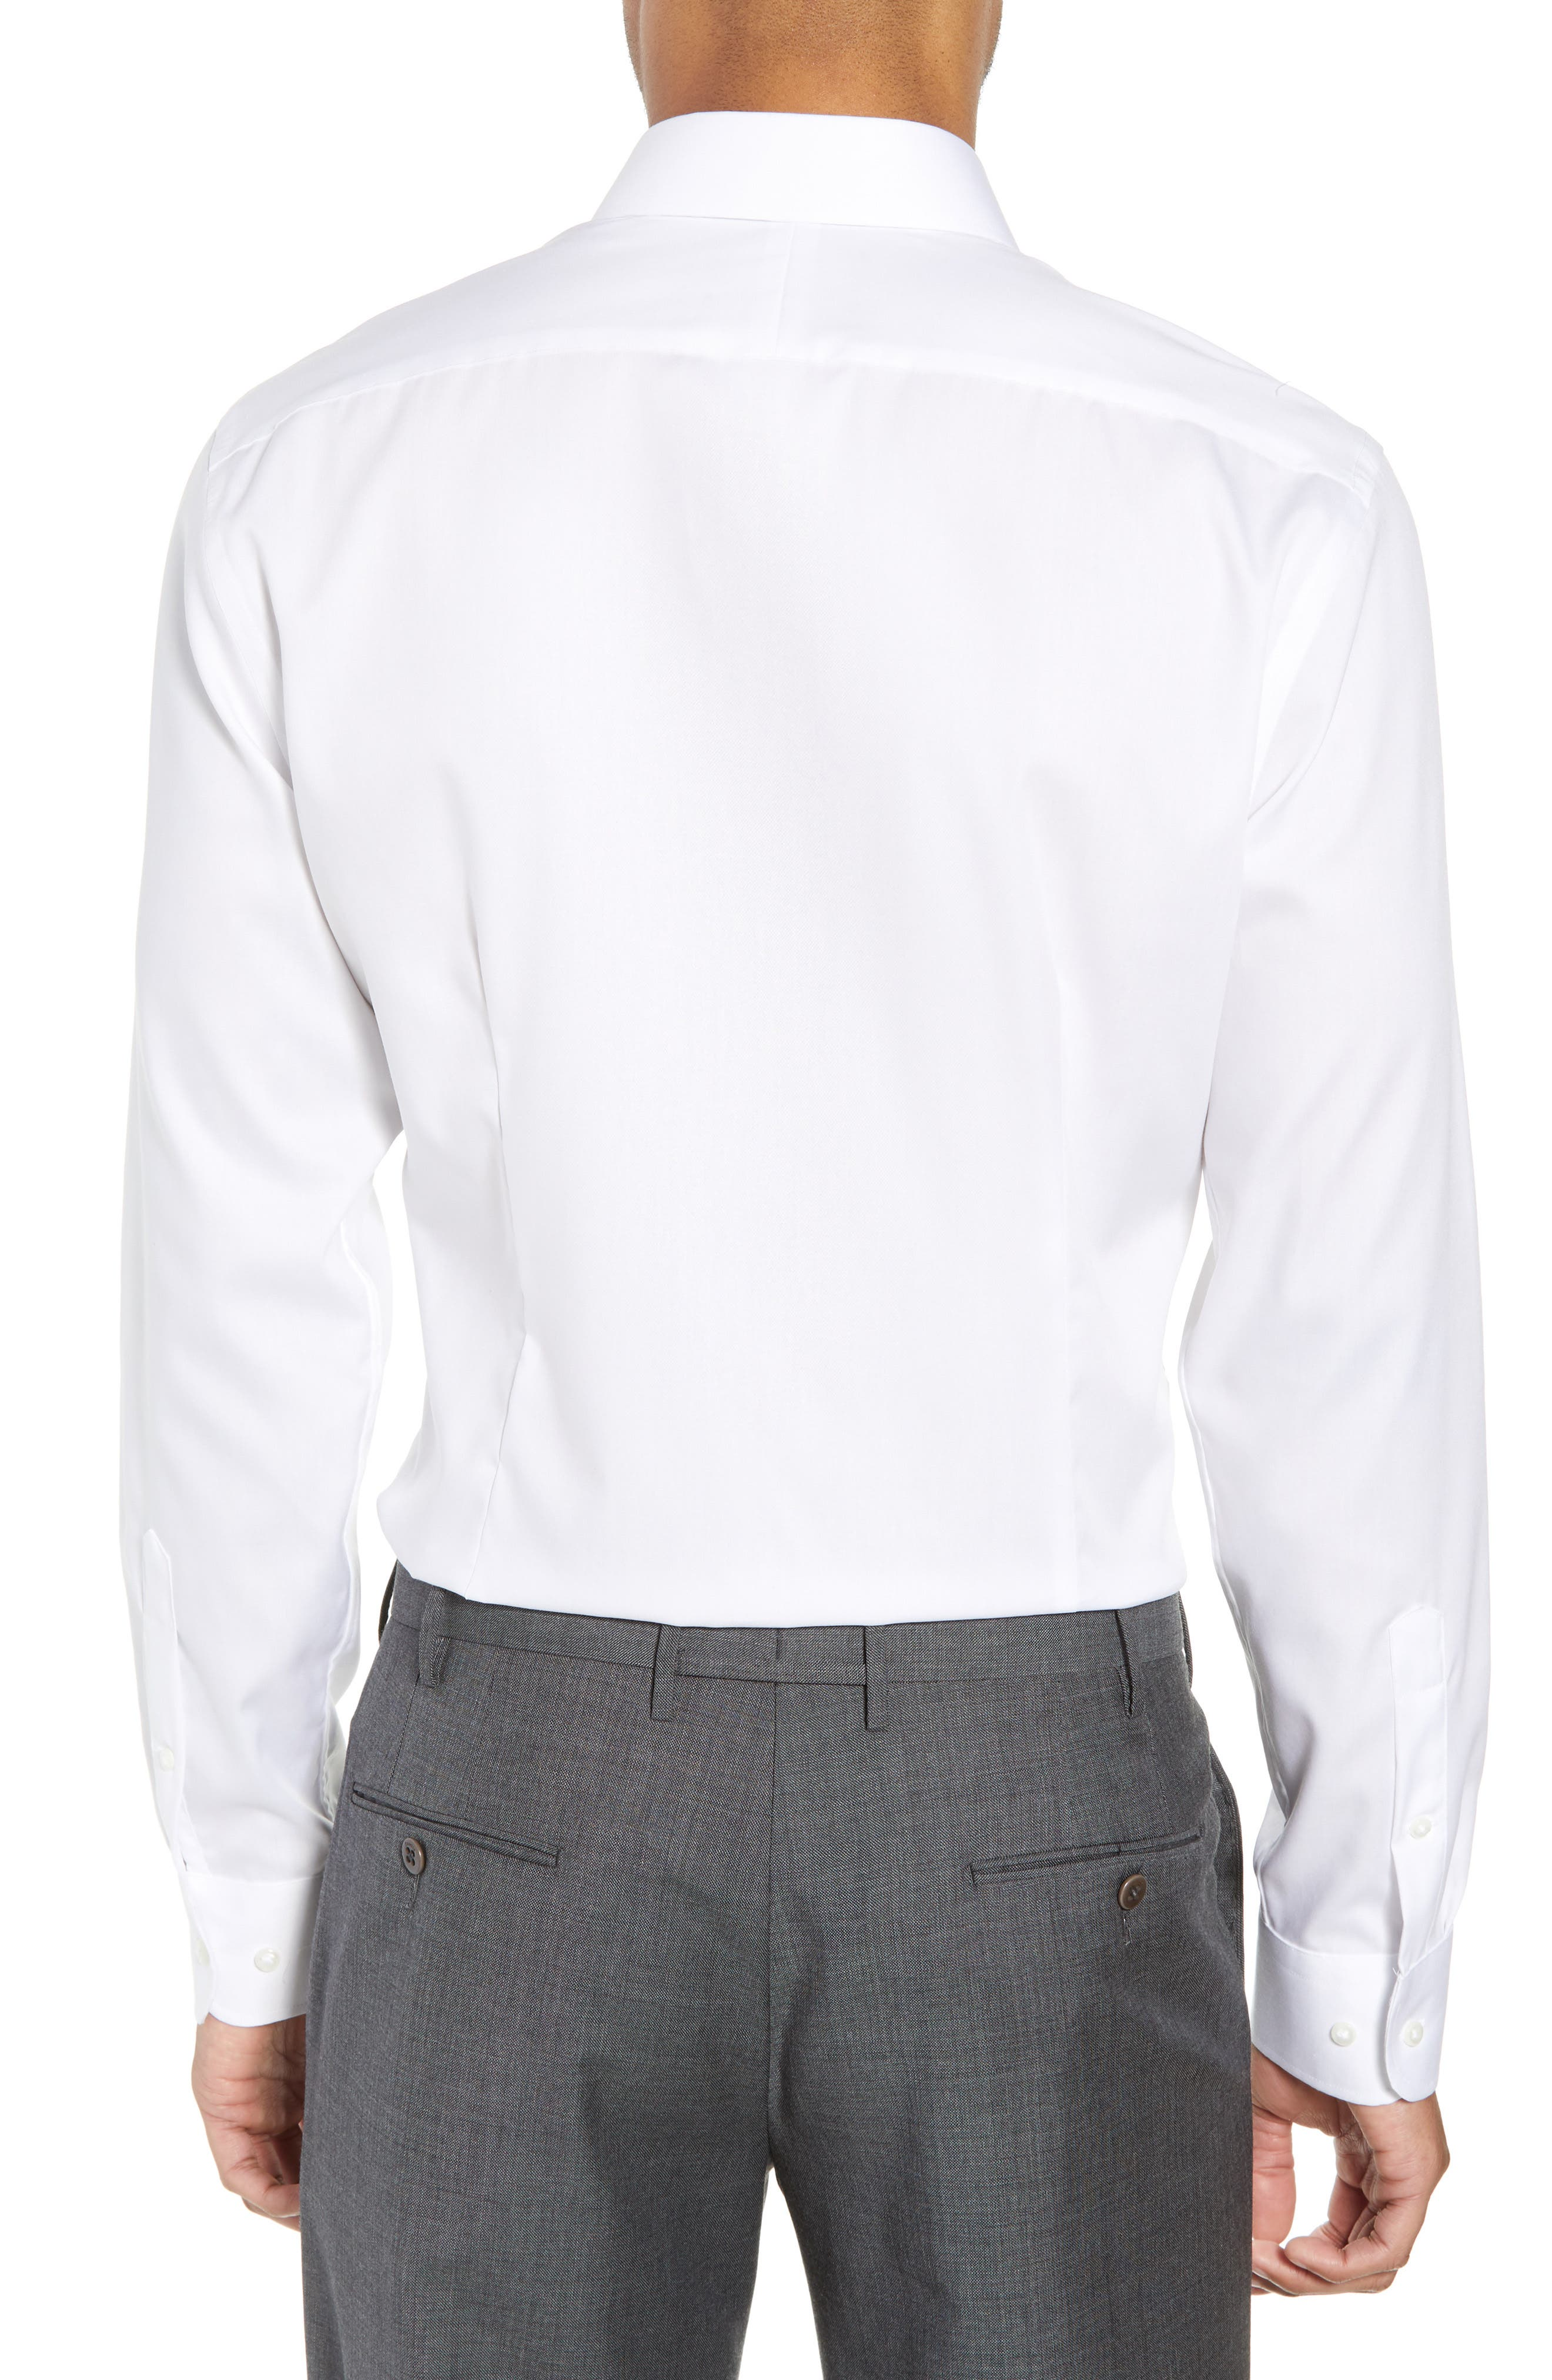 Extra Trim Fit Non-Iron Solid Dress Shirt,                             Alternate thumbnail 5, color,                             White